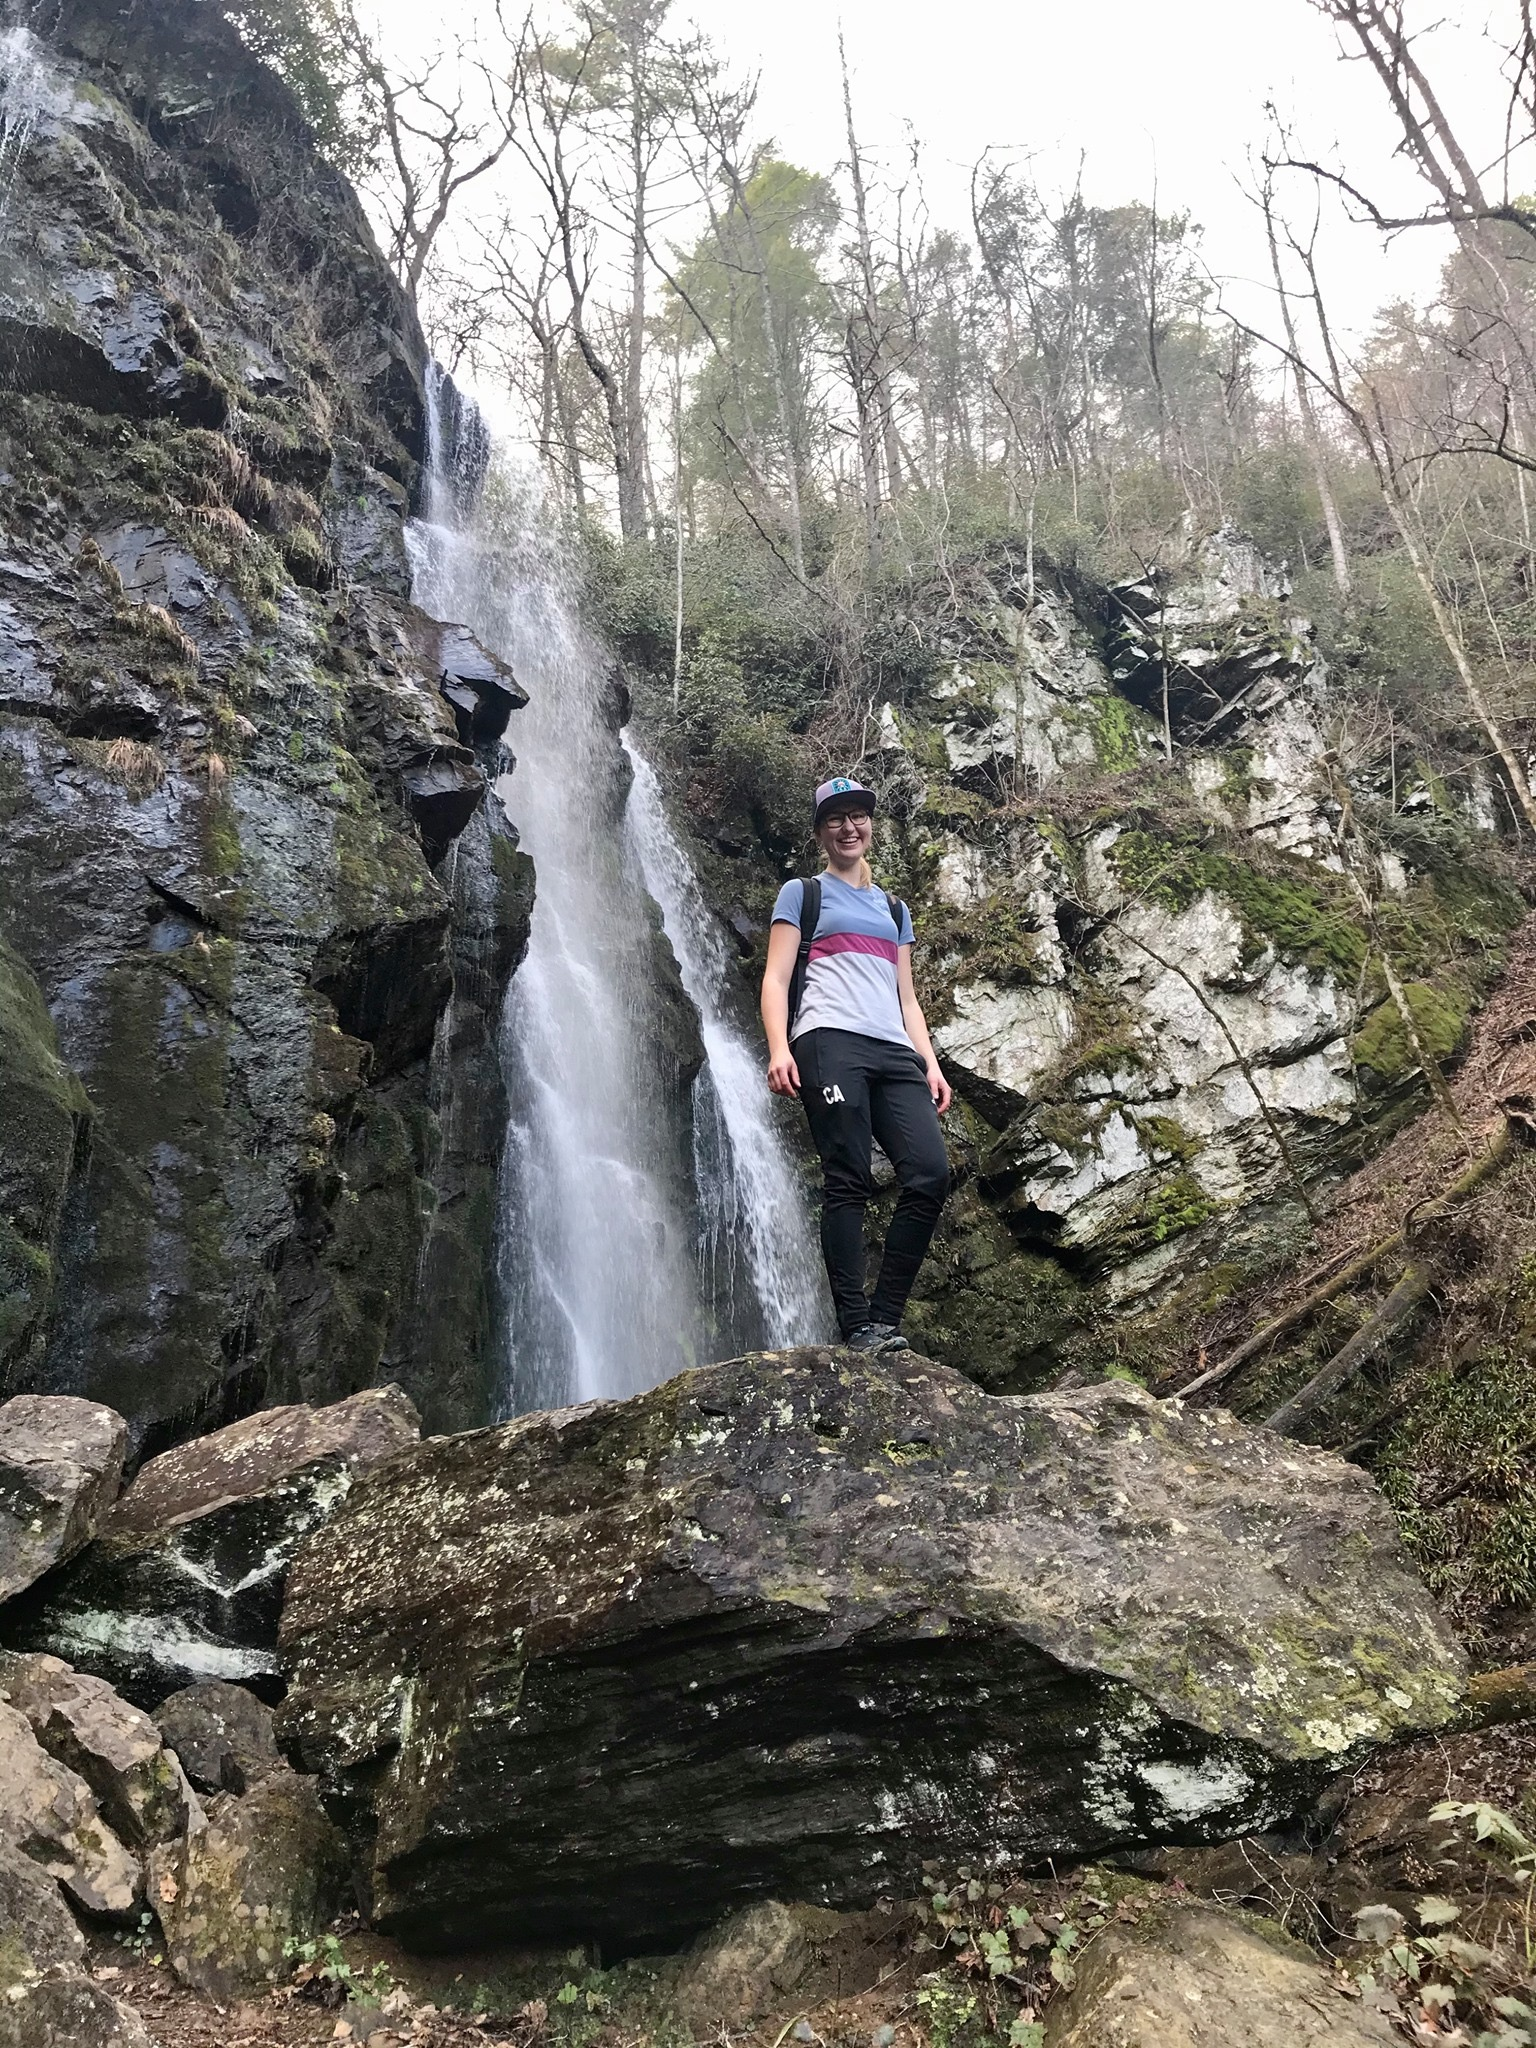 Christina Aigner hiking in the Appalachians